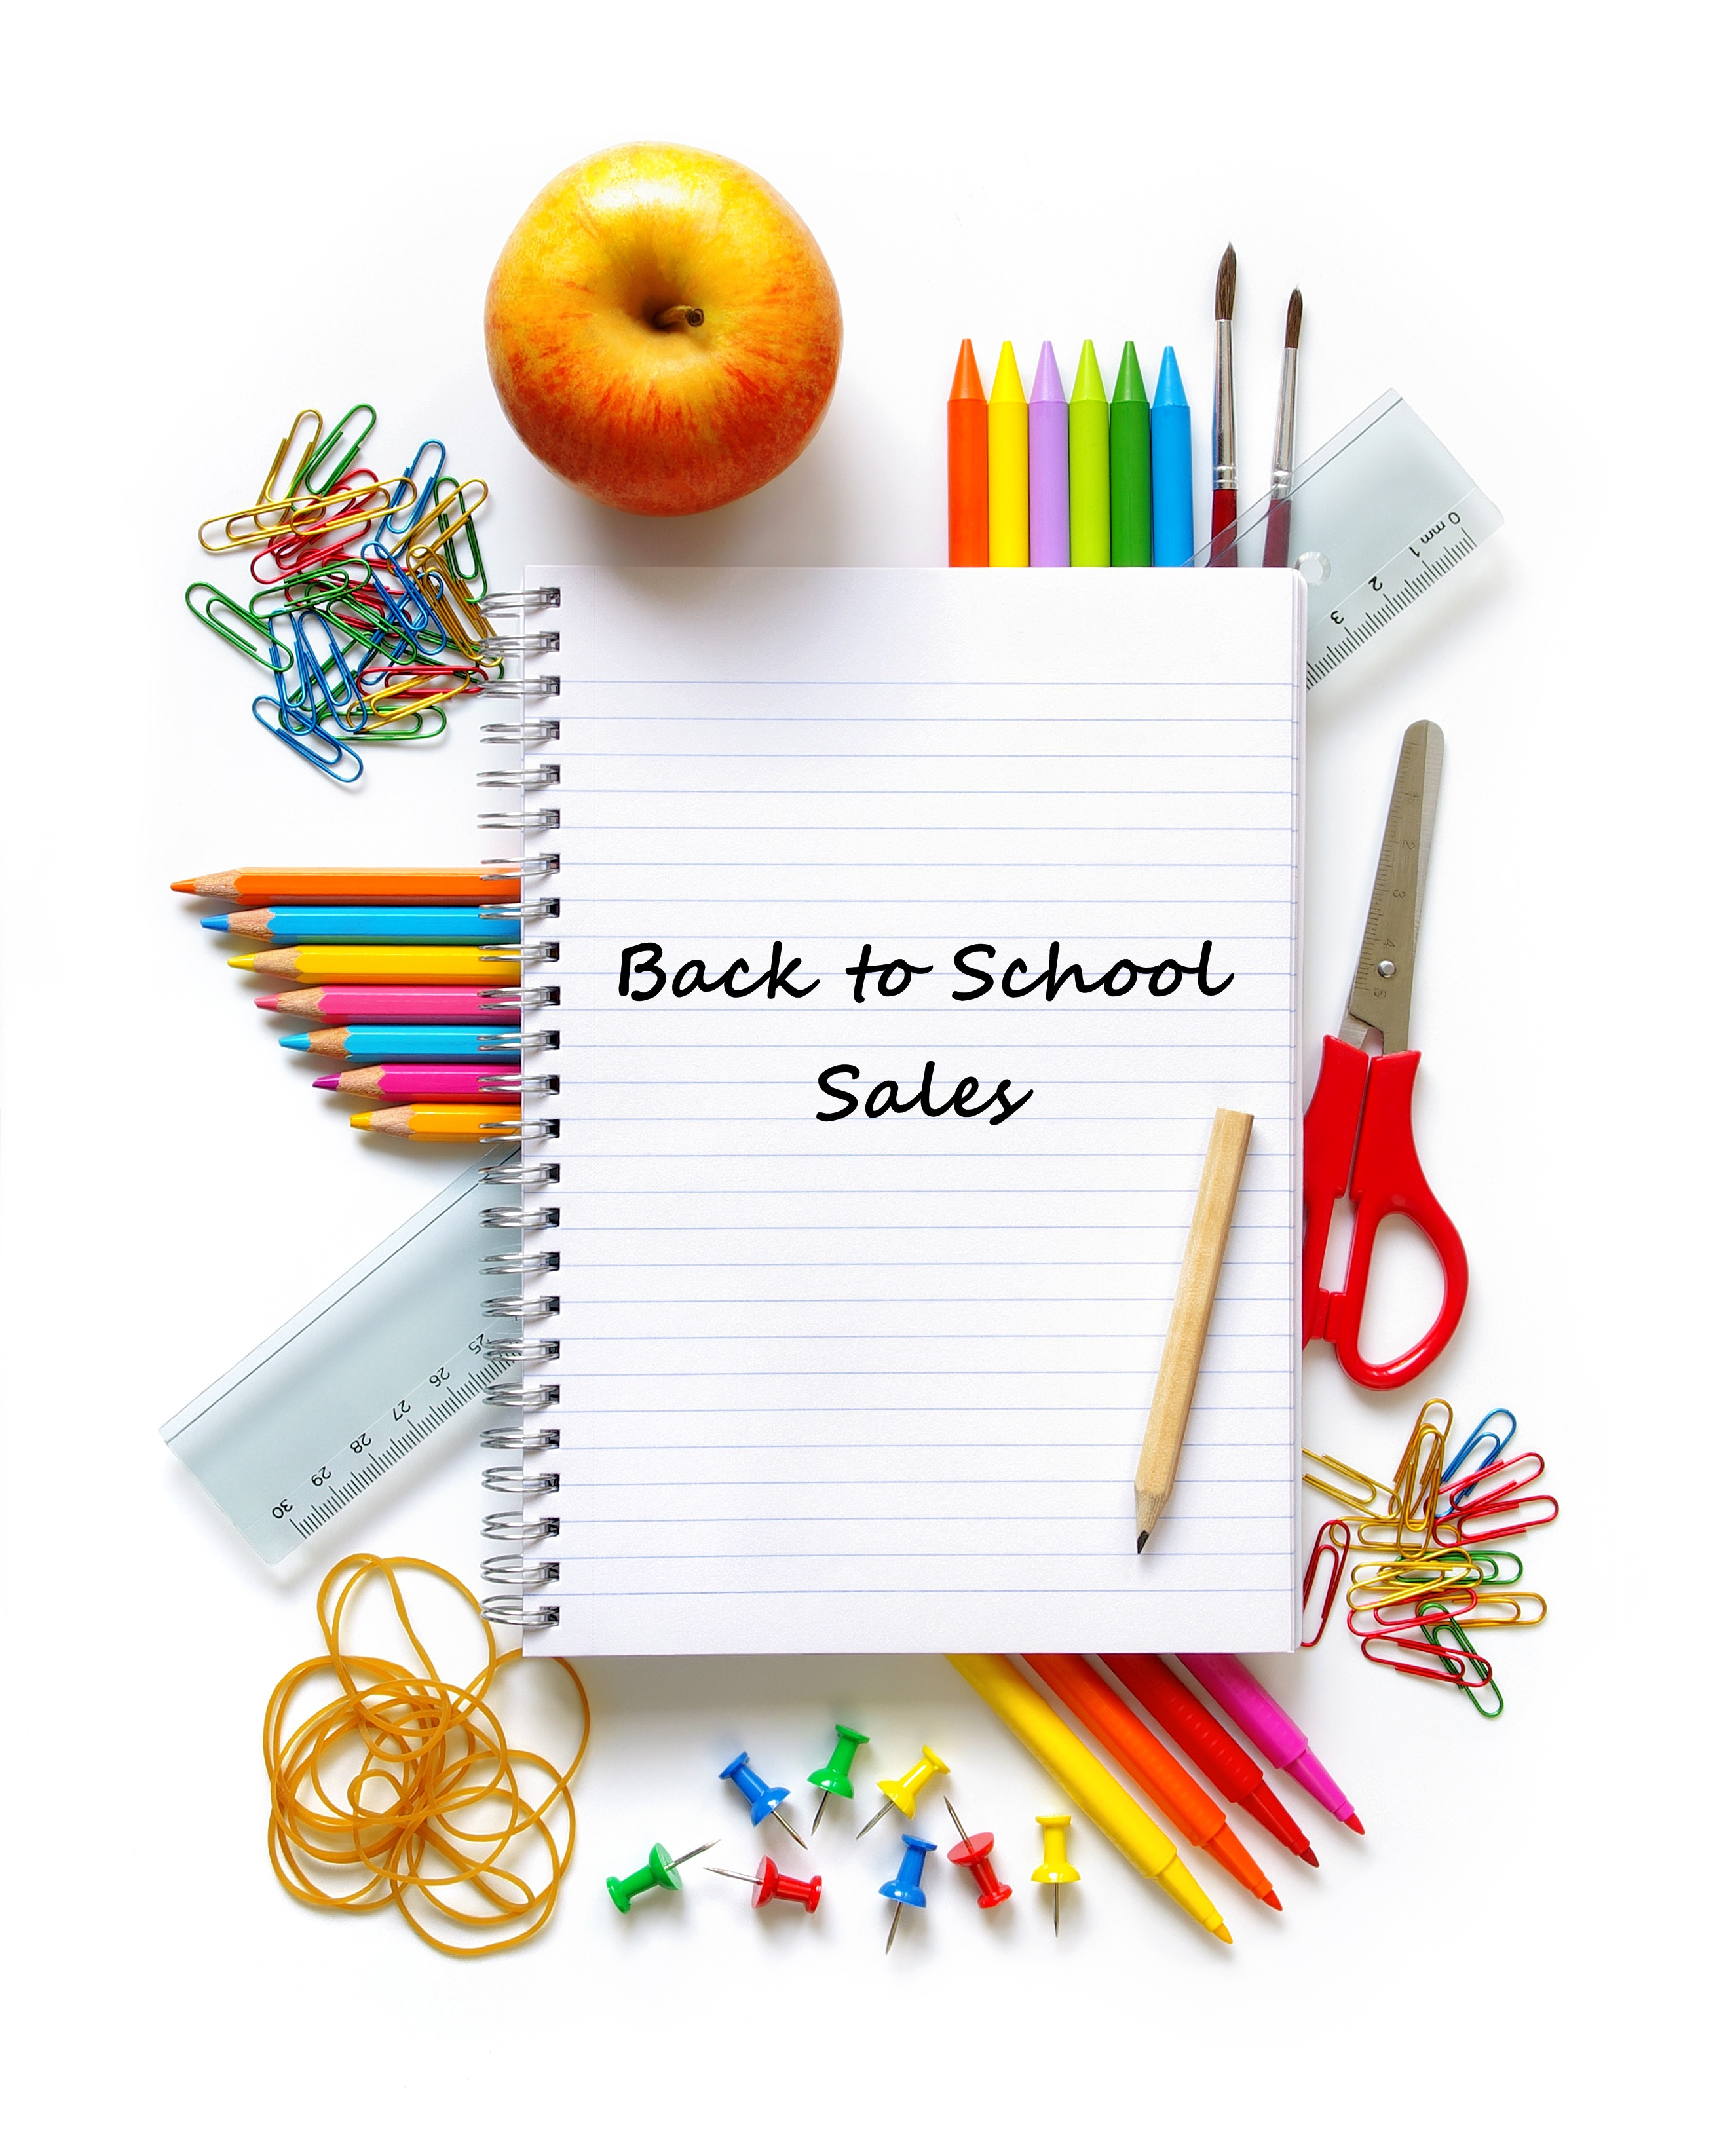 BACK TO SCHOOL DEALS THRU JULY 21 – WALMART, TARGET, KMART, WALGREENS + MORE